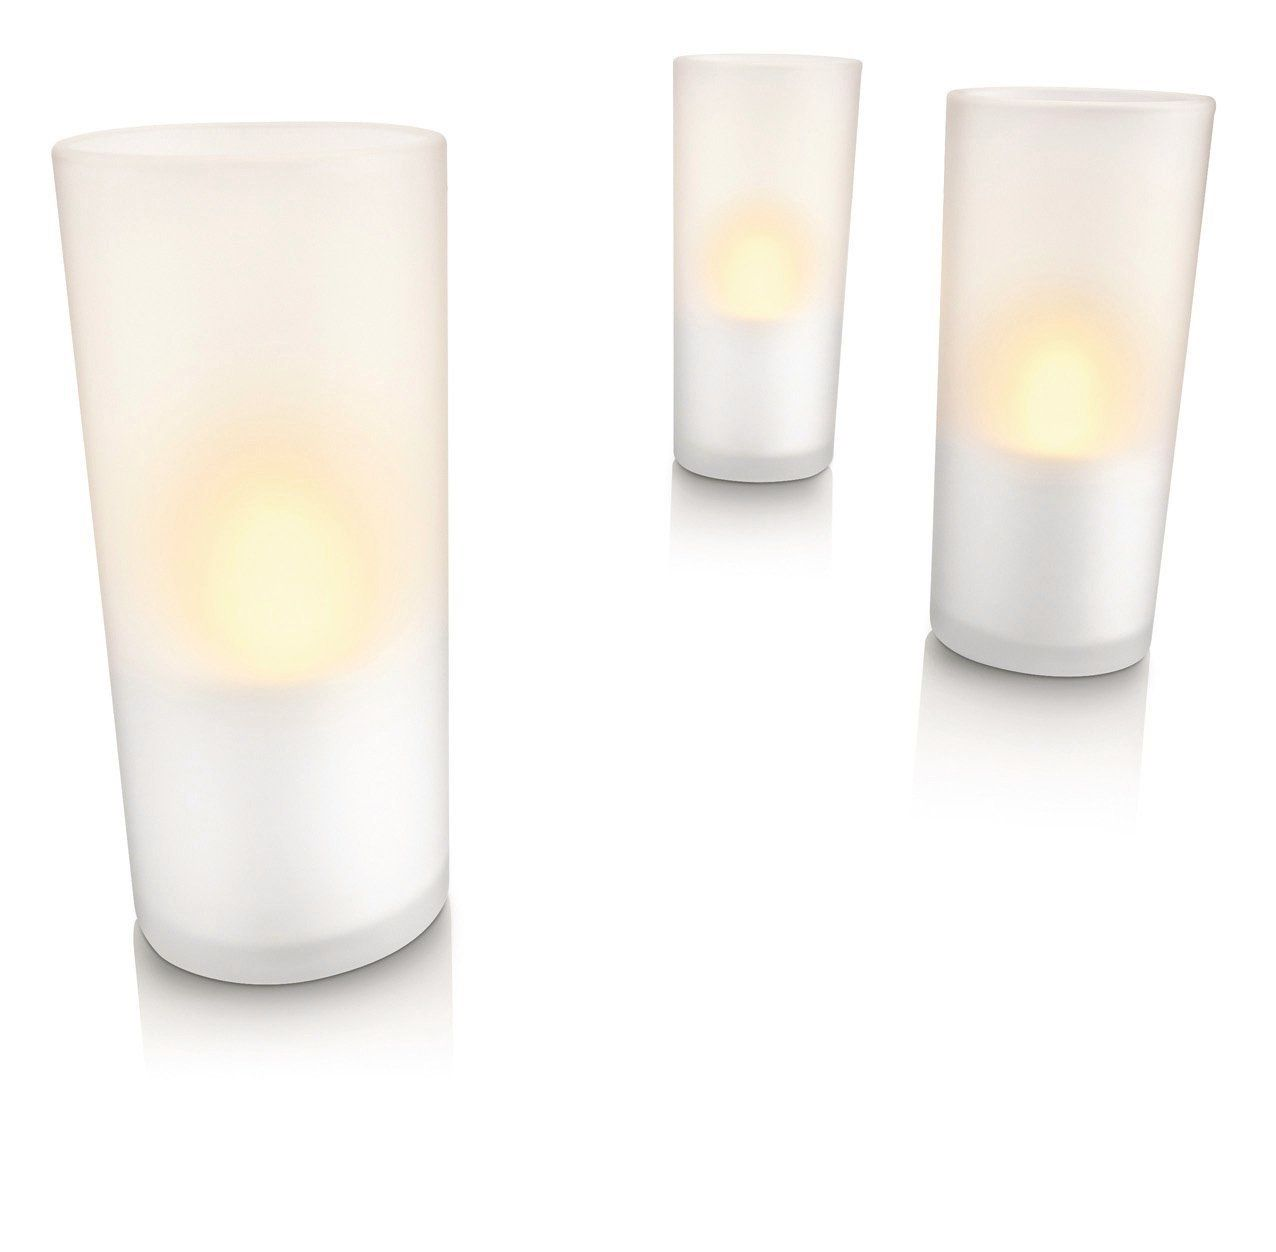 BARGAIN Philips Imageo LED Rechargeable Candle Lights, White NOW £14.99 At Amazon - Gratisfaction UK Bargains #bargains